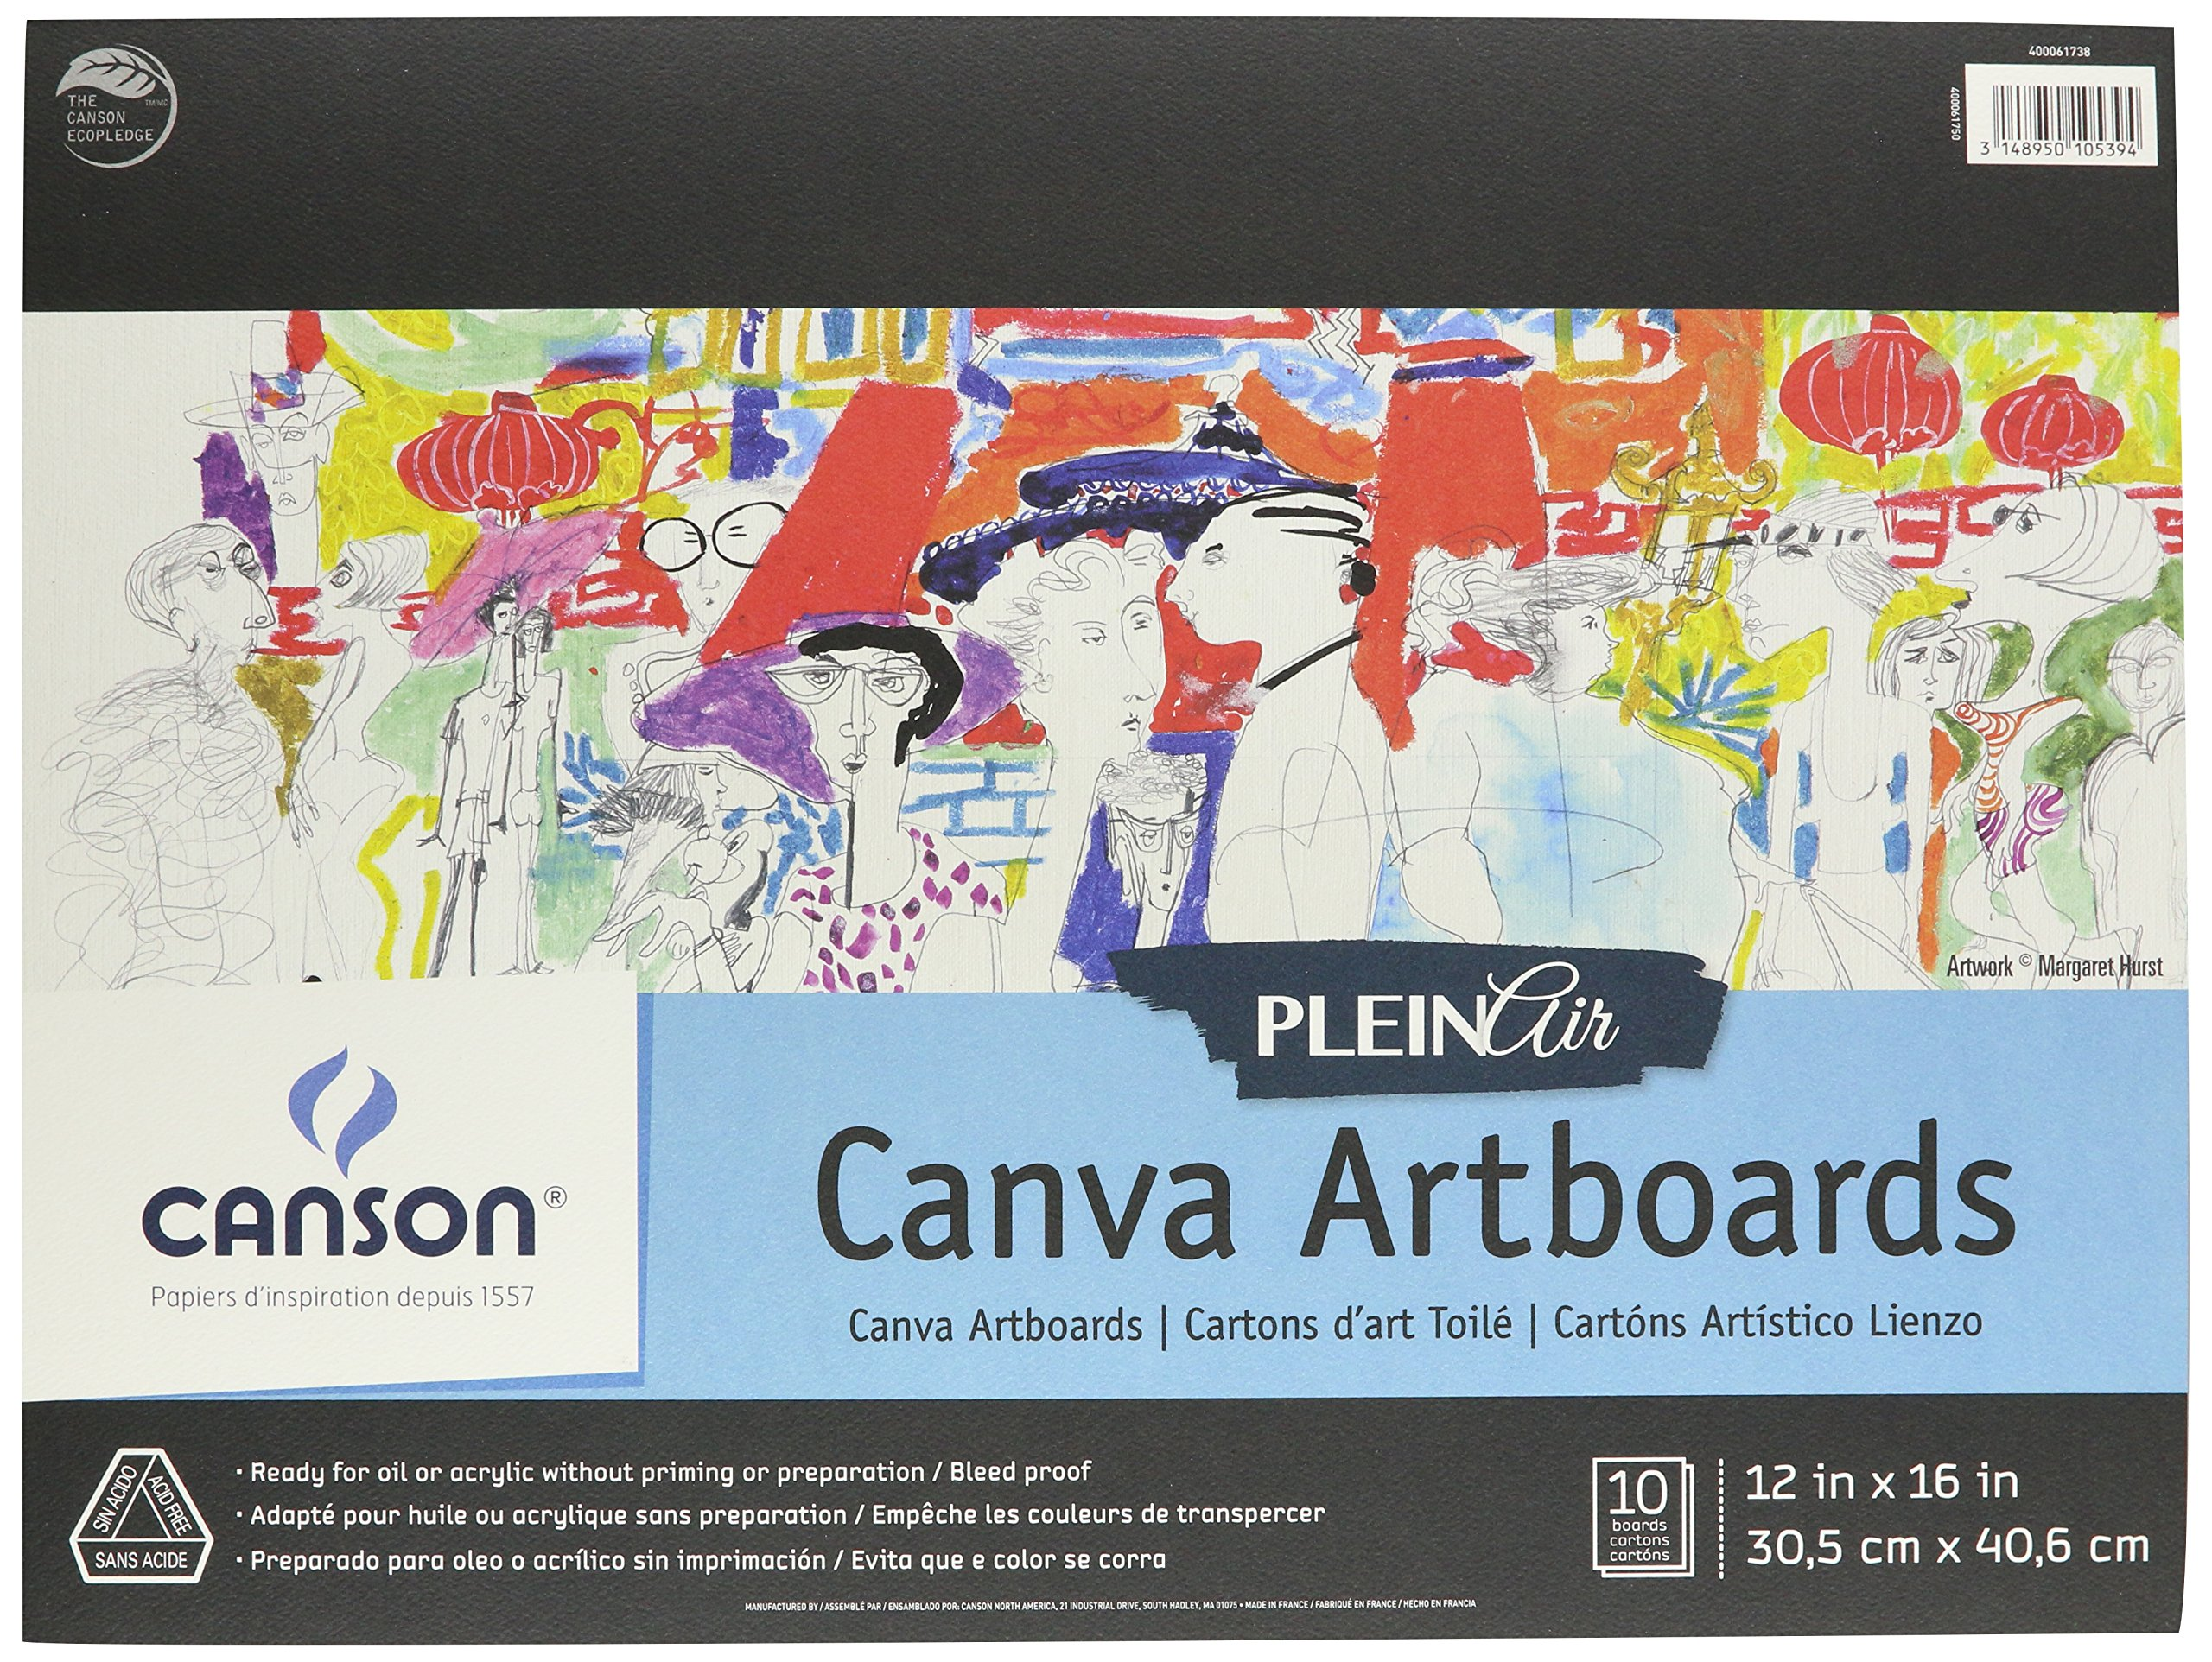 Canson Plein Air Canva Rigid Art Boards for Paints or Sticks, Oil and Acrylic, 12 x 16 Inch, Set of 10 Boards